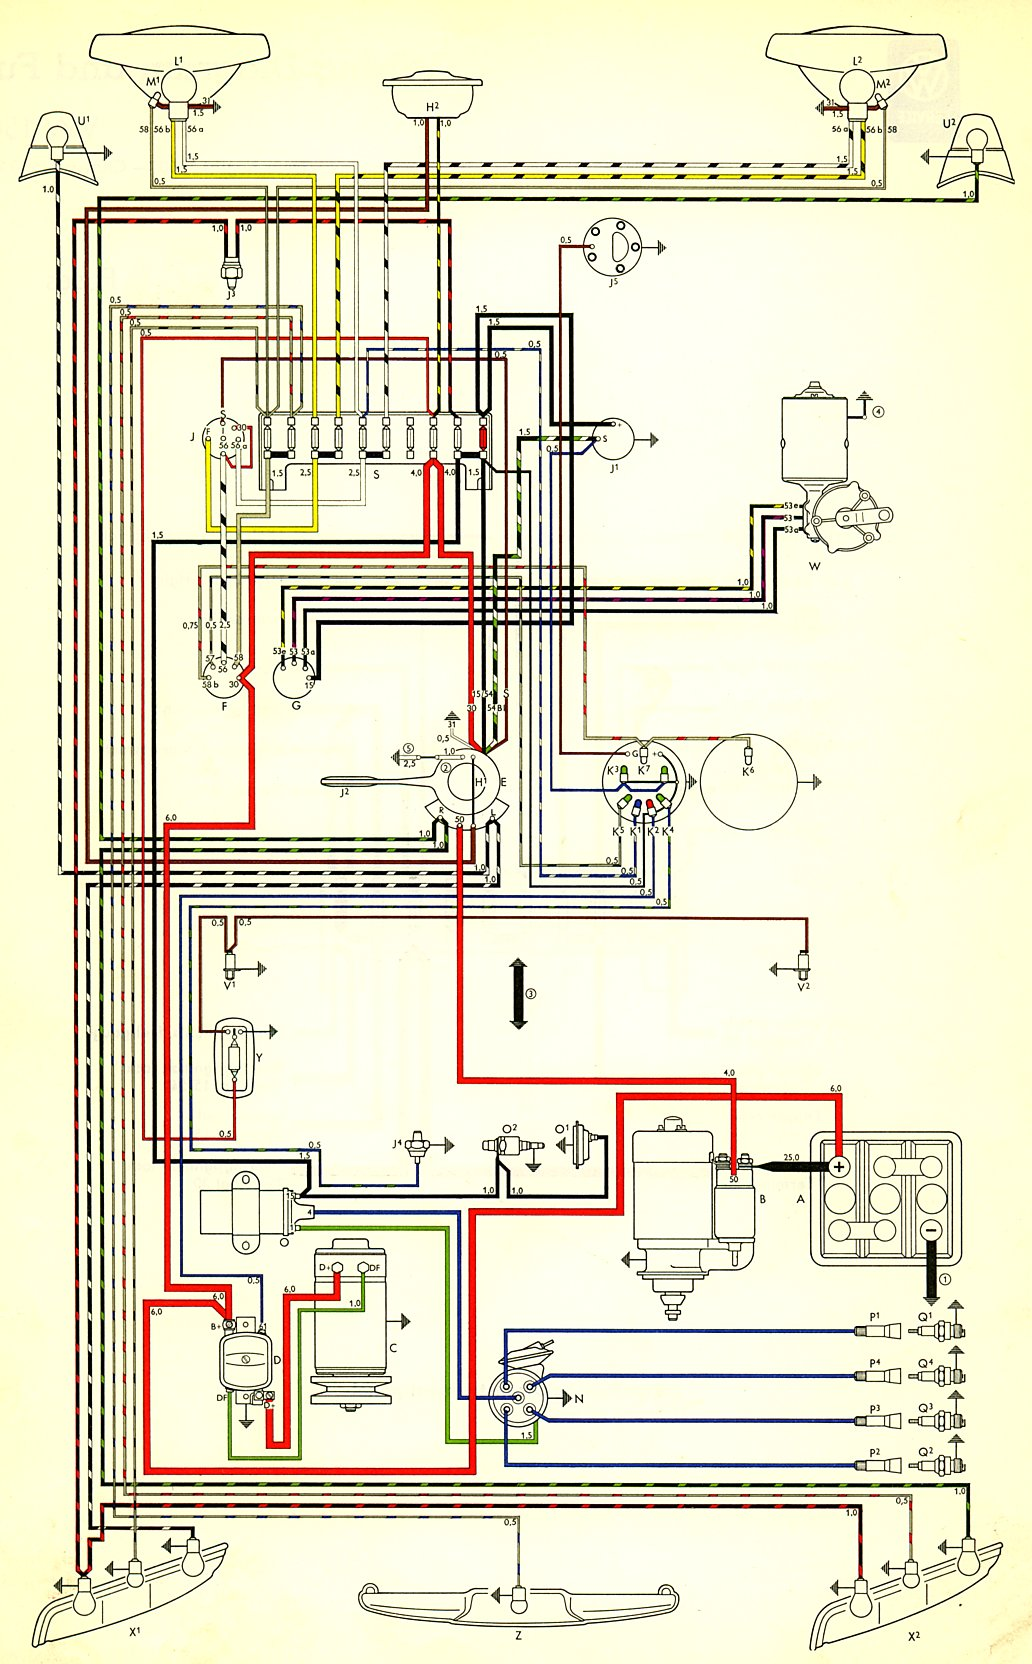 Vw Type 3 Wiring Harness Diagram - Wiring Diagram Online  Beetle Wiring Harness Diagram on 71 beetle seats, 71 beetle wheels, 71 beetle fuse diagram, 71 beetle bumpers, vw beetle diagram, 71 beetle exhaust, 71 beetle engine, 71 beetle parts, super beetle engine diagram, 71 beetle carb diagram, 71 beetle rear suspension, 1971 vw engine diagram, 71 beetle oil filter,